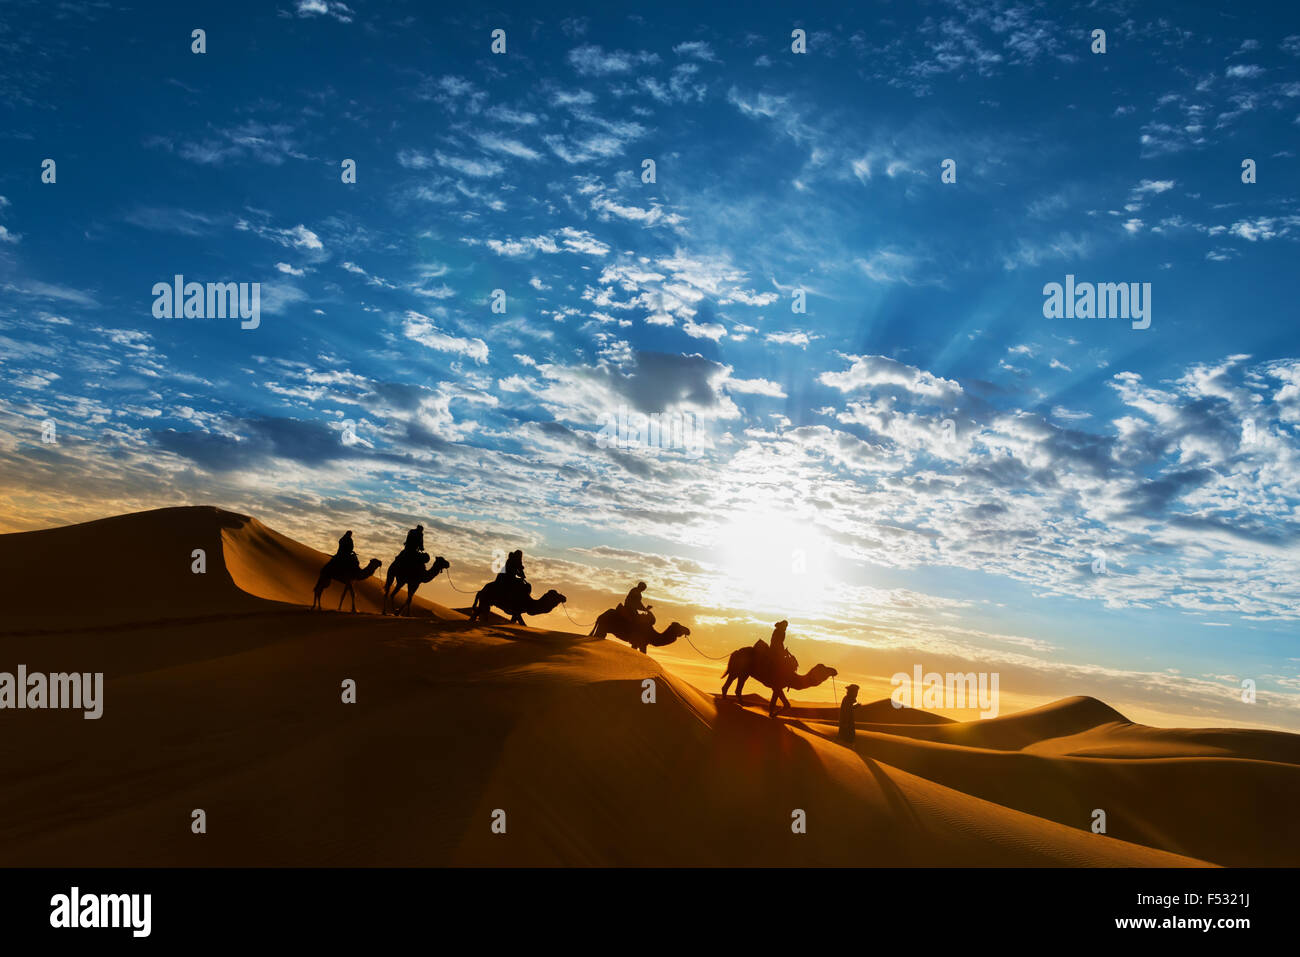 Caravan in the desert during sunrise against a beautiful cloudy sky, Erg Chebbi, Merzouga, Morocco. Stock Photo